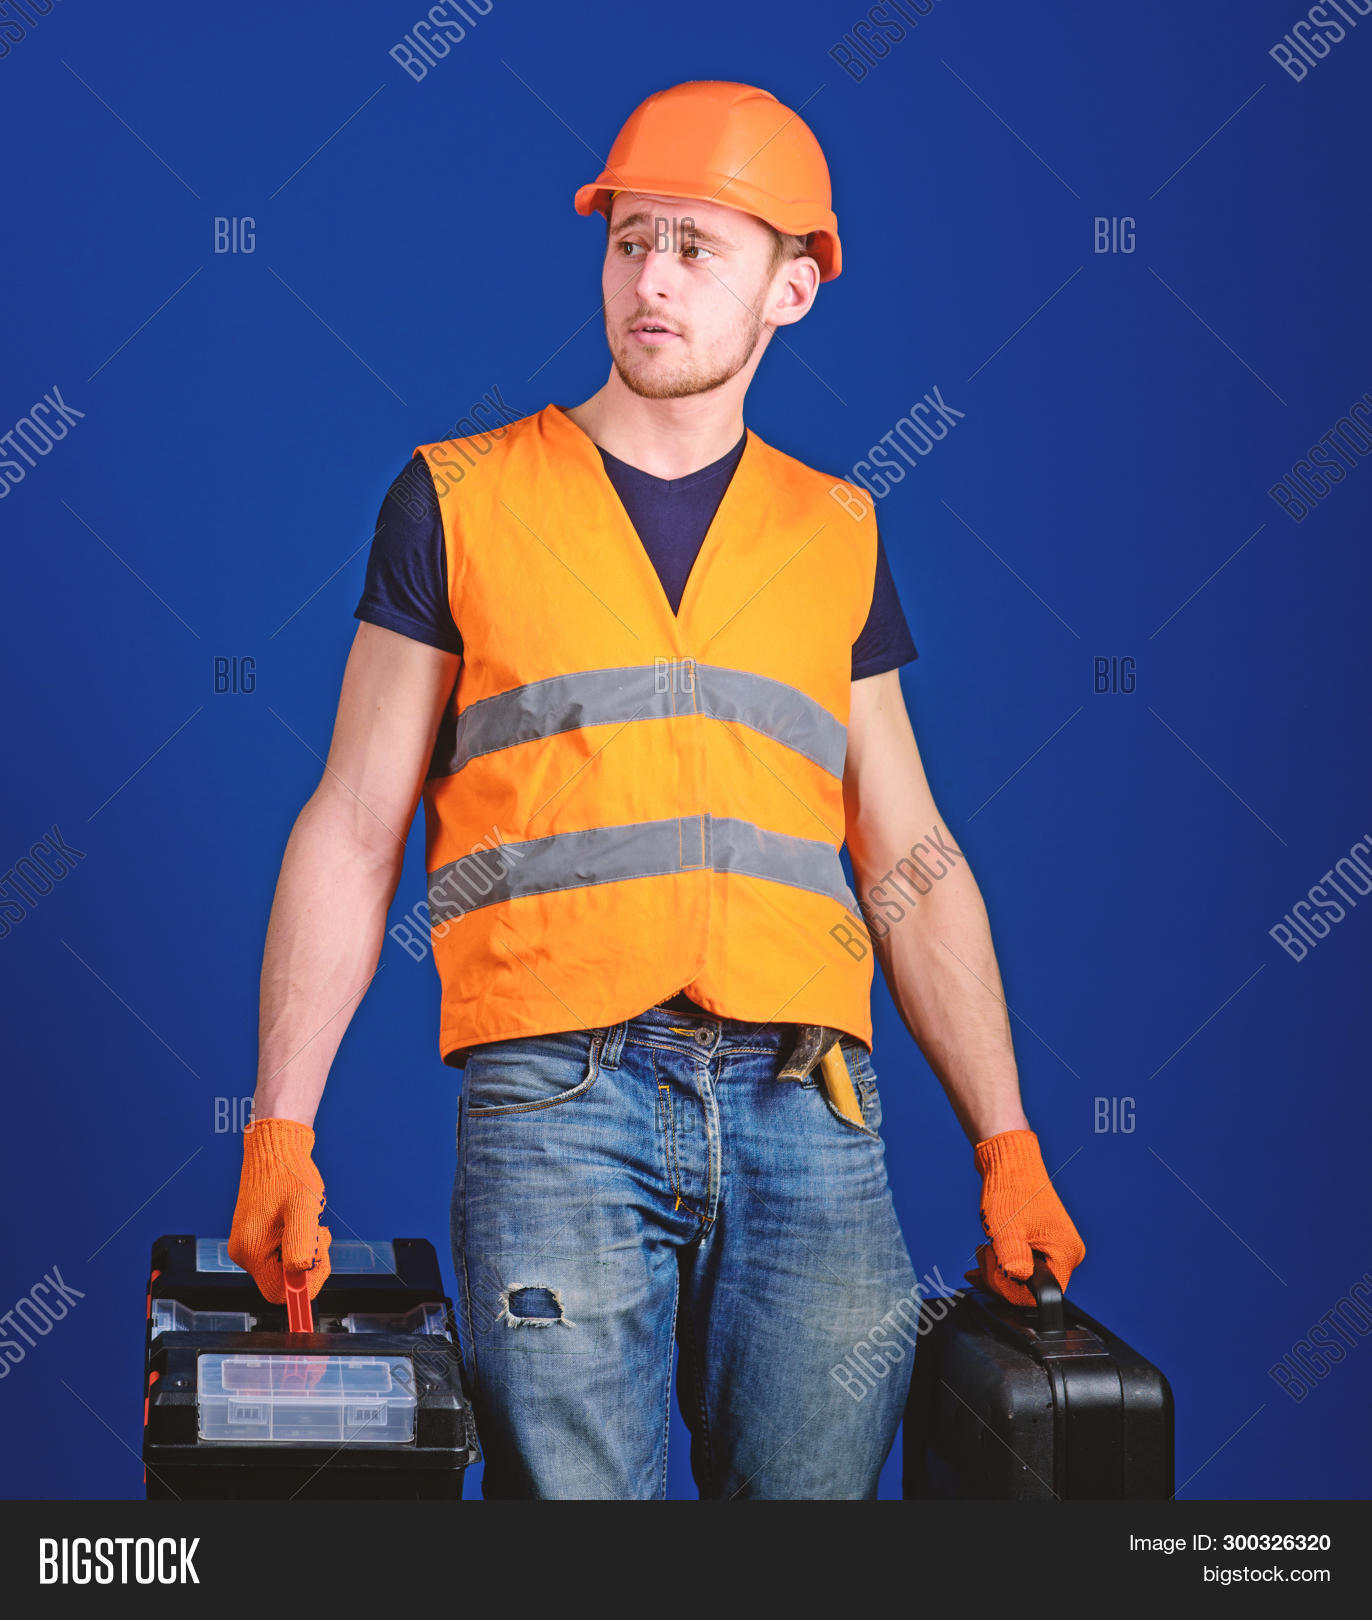 background,beard,bearded,blue,build,builder,calm,carry,case,caucasian,concept,construction,constructor,contractor,developer,engineering,equipment,equipped,face,guy,handsome,handyman,hard,hat,helmet,helpful,hold,laborer,man,mechanic,problem,professional,ready,repair,repairer,repairman,service,solve,strong,suitcase,technician,tool,toolbox,uniform,unshaven,work,worker